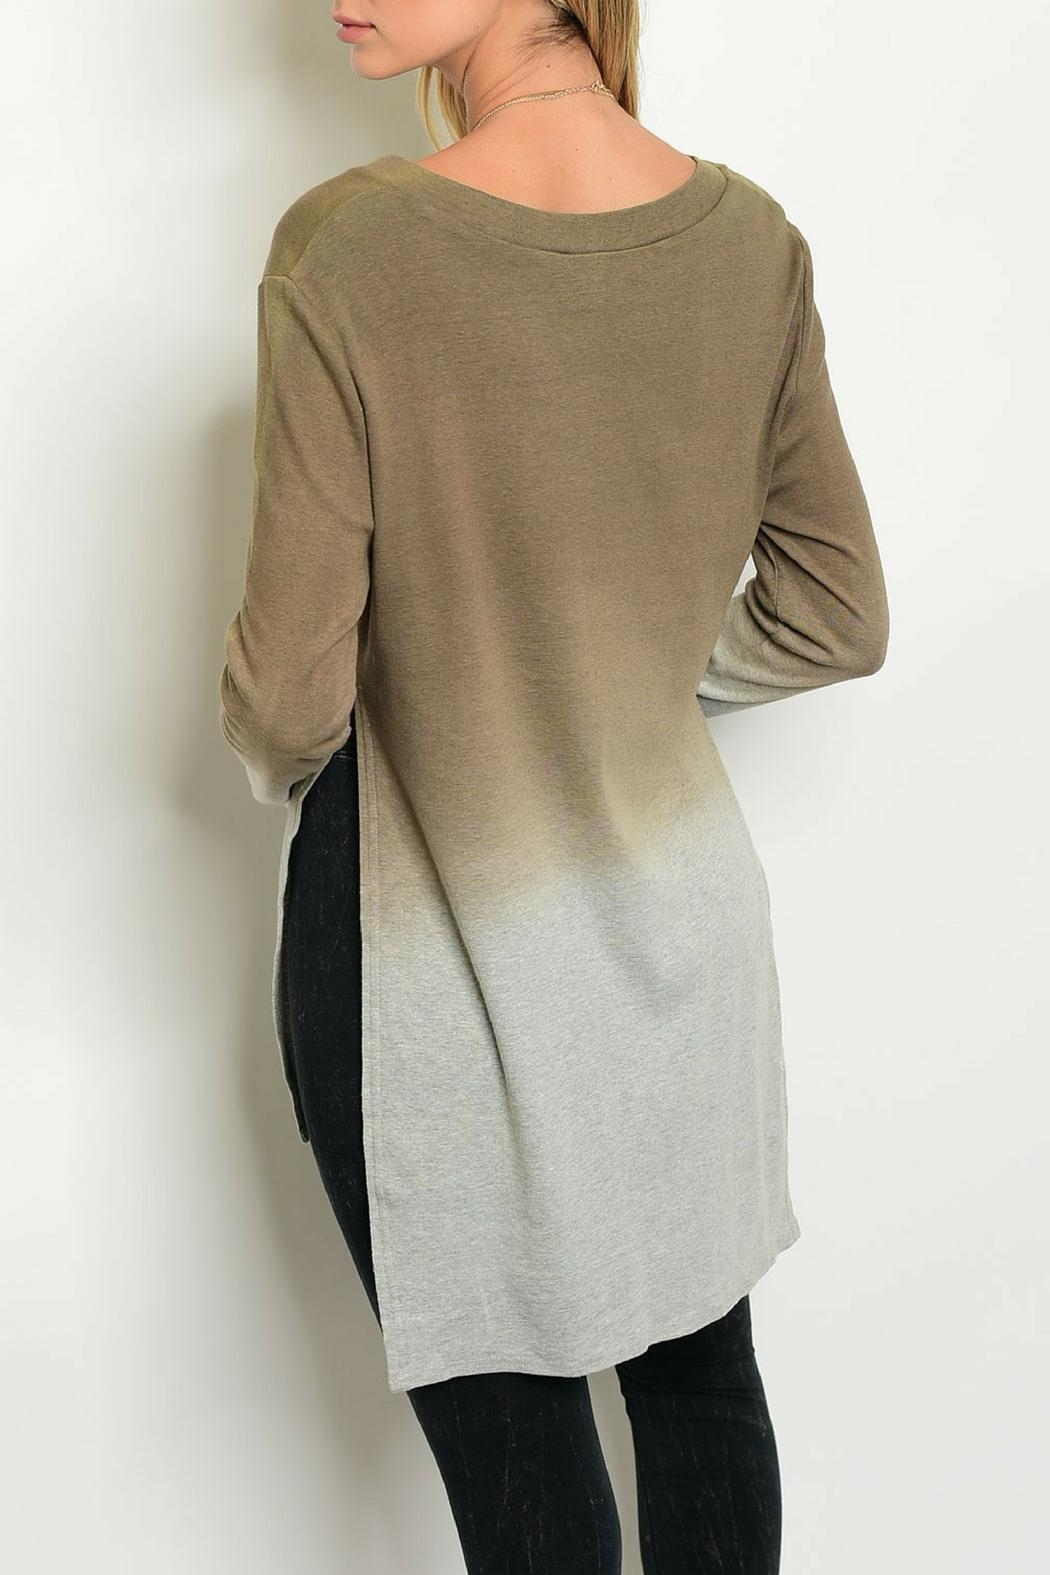 LoveRiche Cocoa Ombre Top - Front Full Image